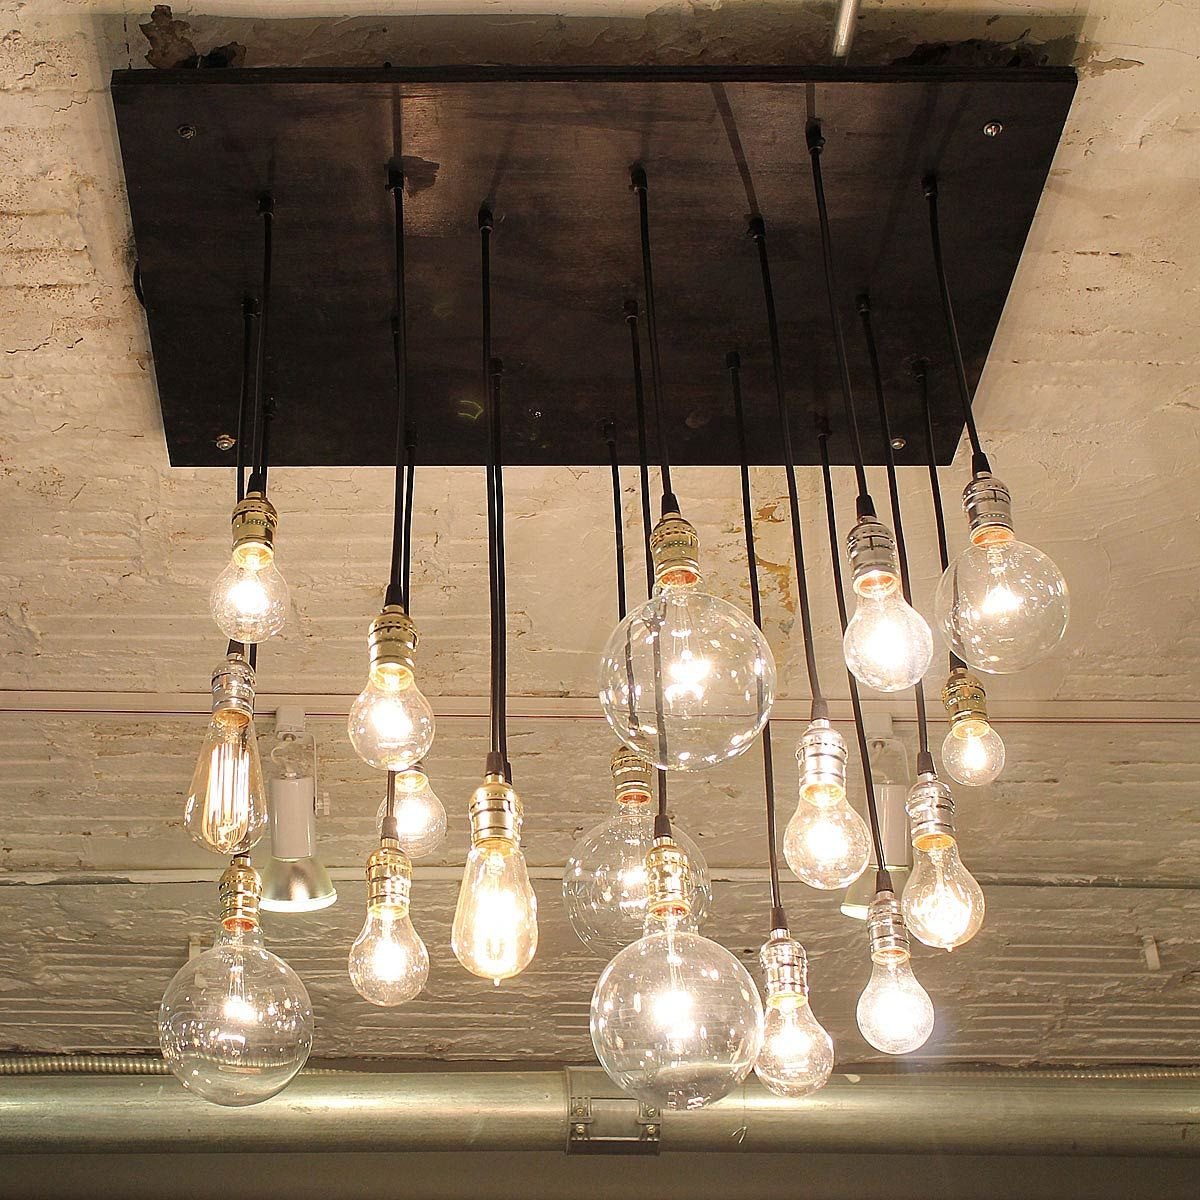 Bring Industrial Style To Your Home With This Antique Bulb And Reclaimed Wood Chandelier